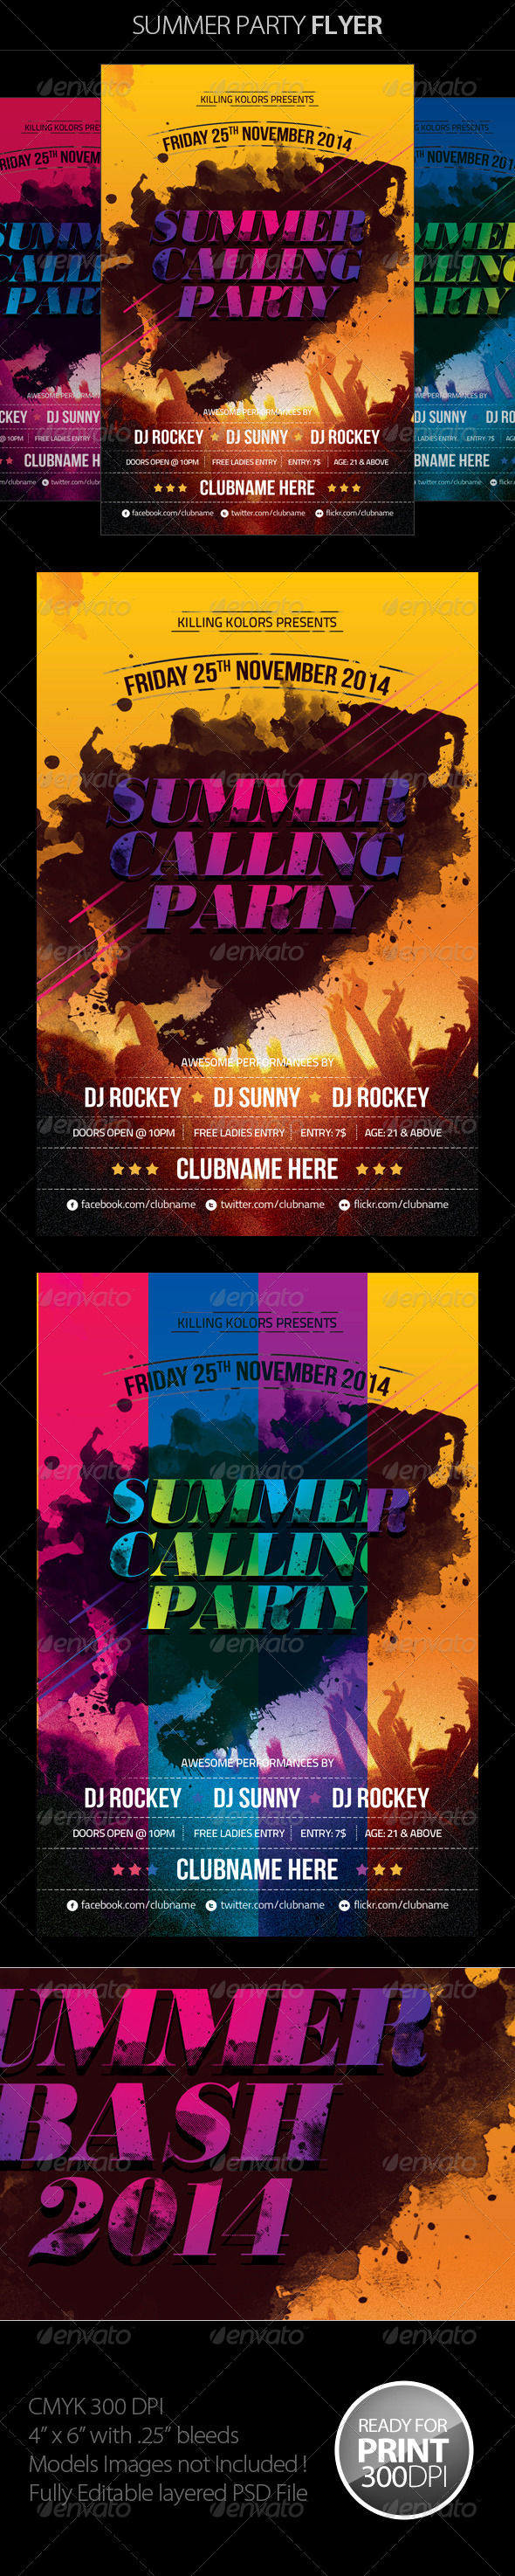 GraphicRiver Summer Party Flyer 7383800